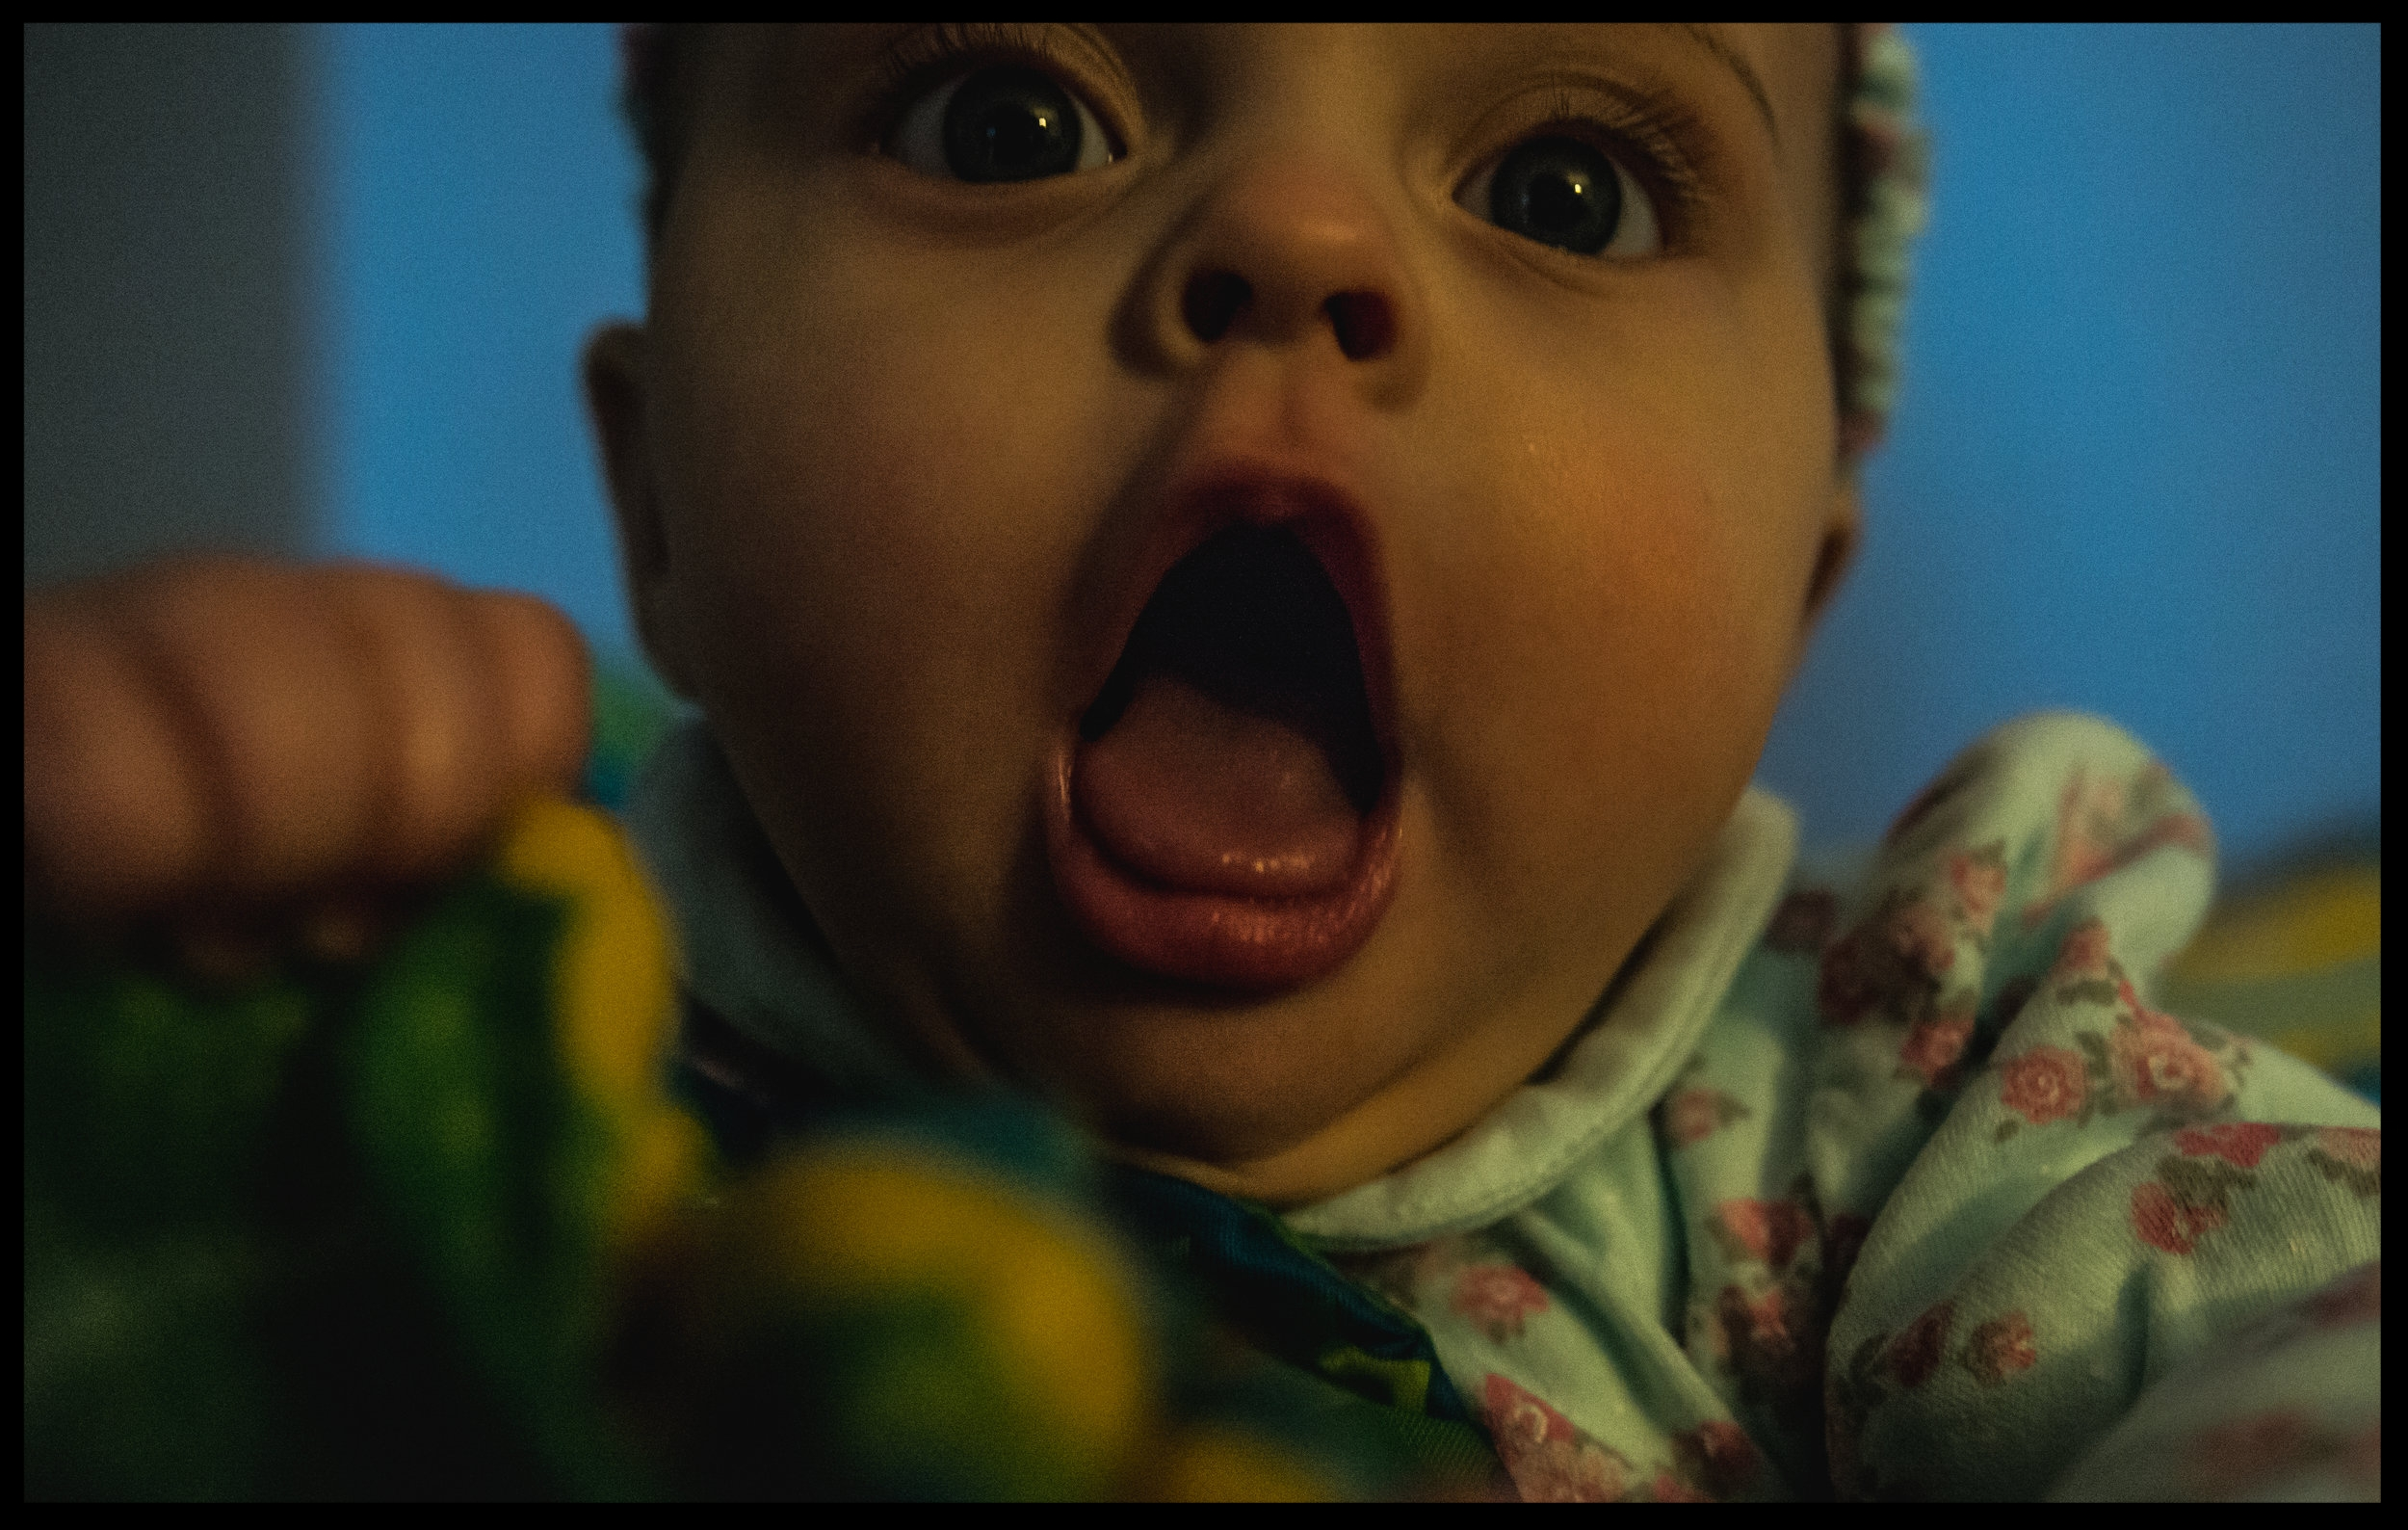 Baby girl with big bright eyes opens her mouth wide, color, Aurora, Colorado